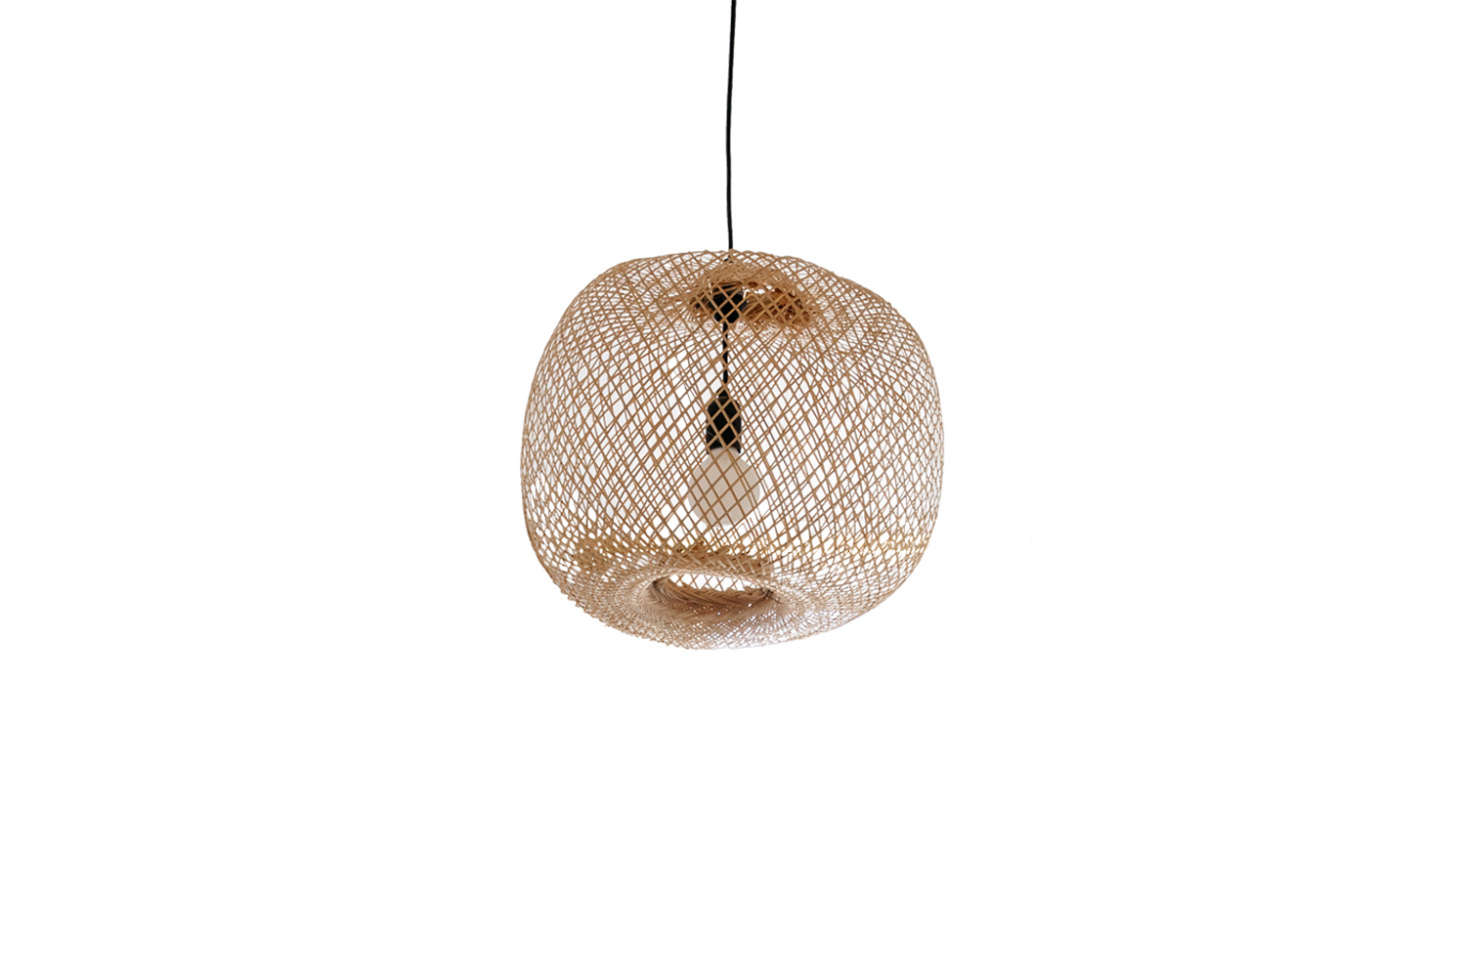 The Round Bamboo Pendant Light is from Couleur Locale; €9.